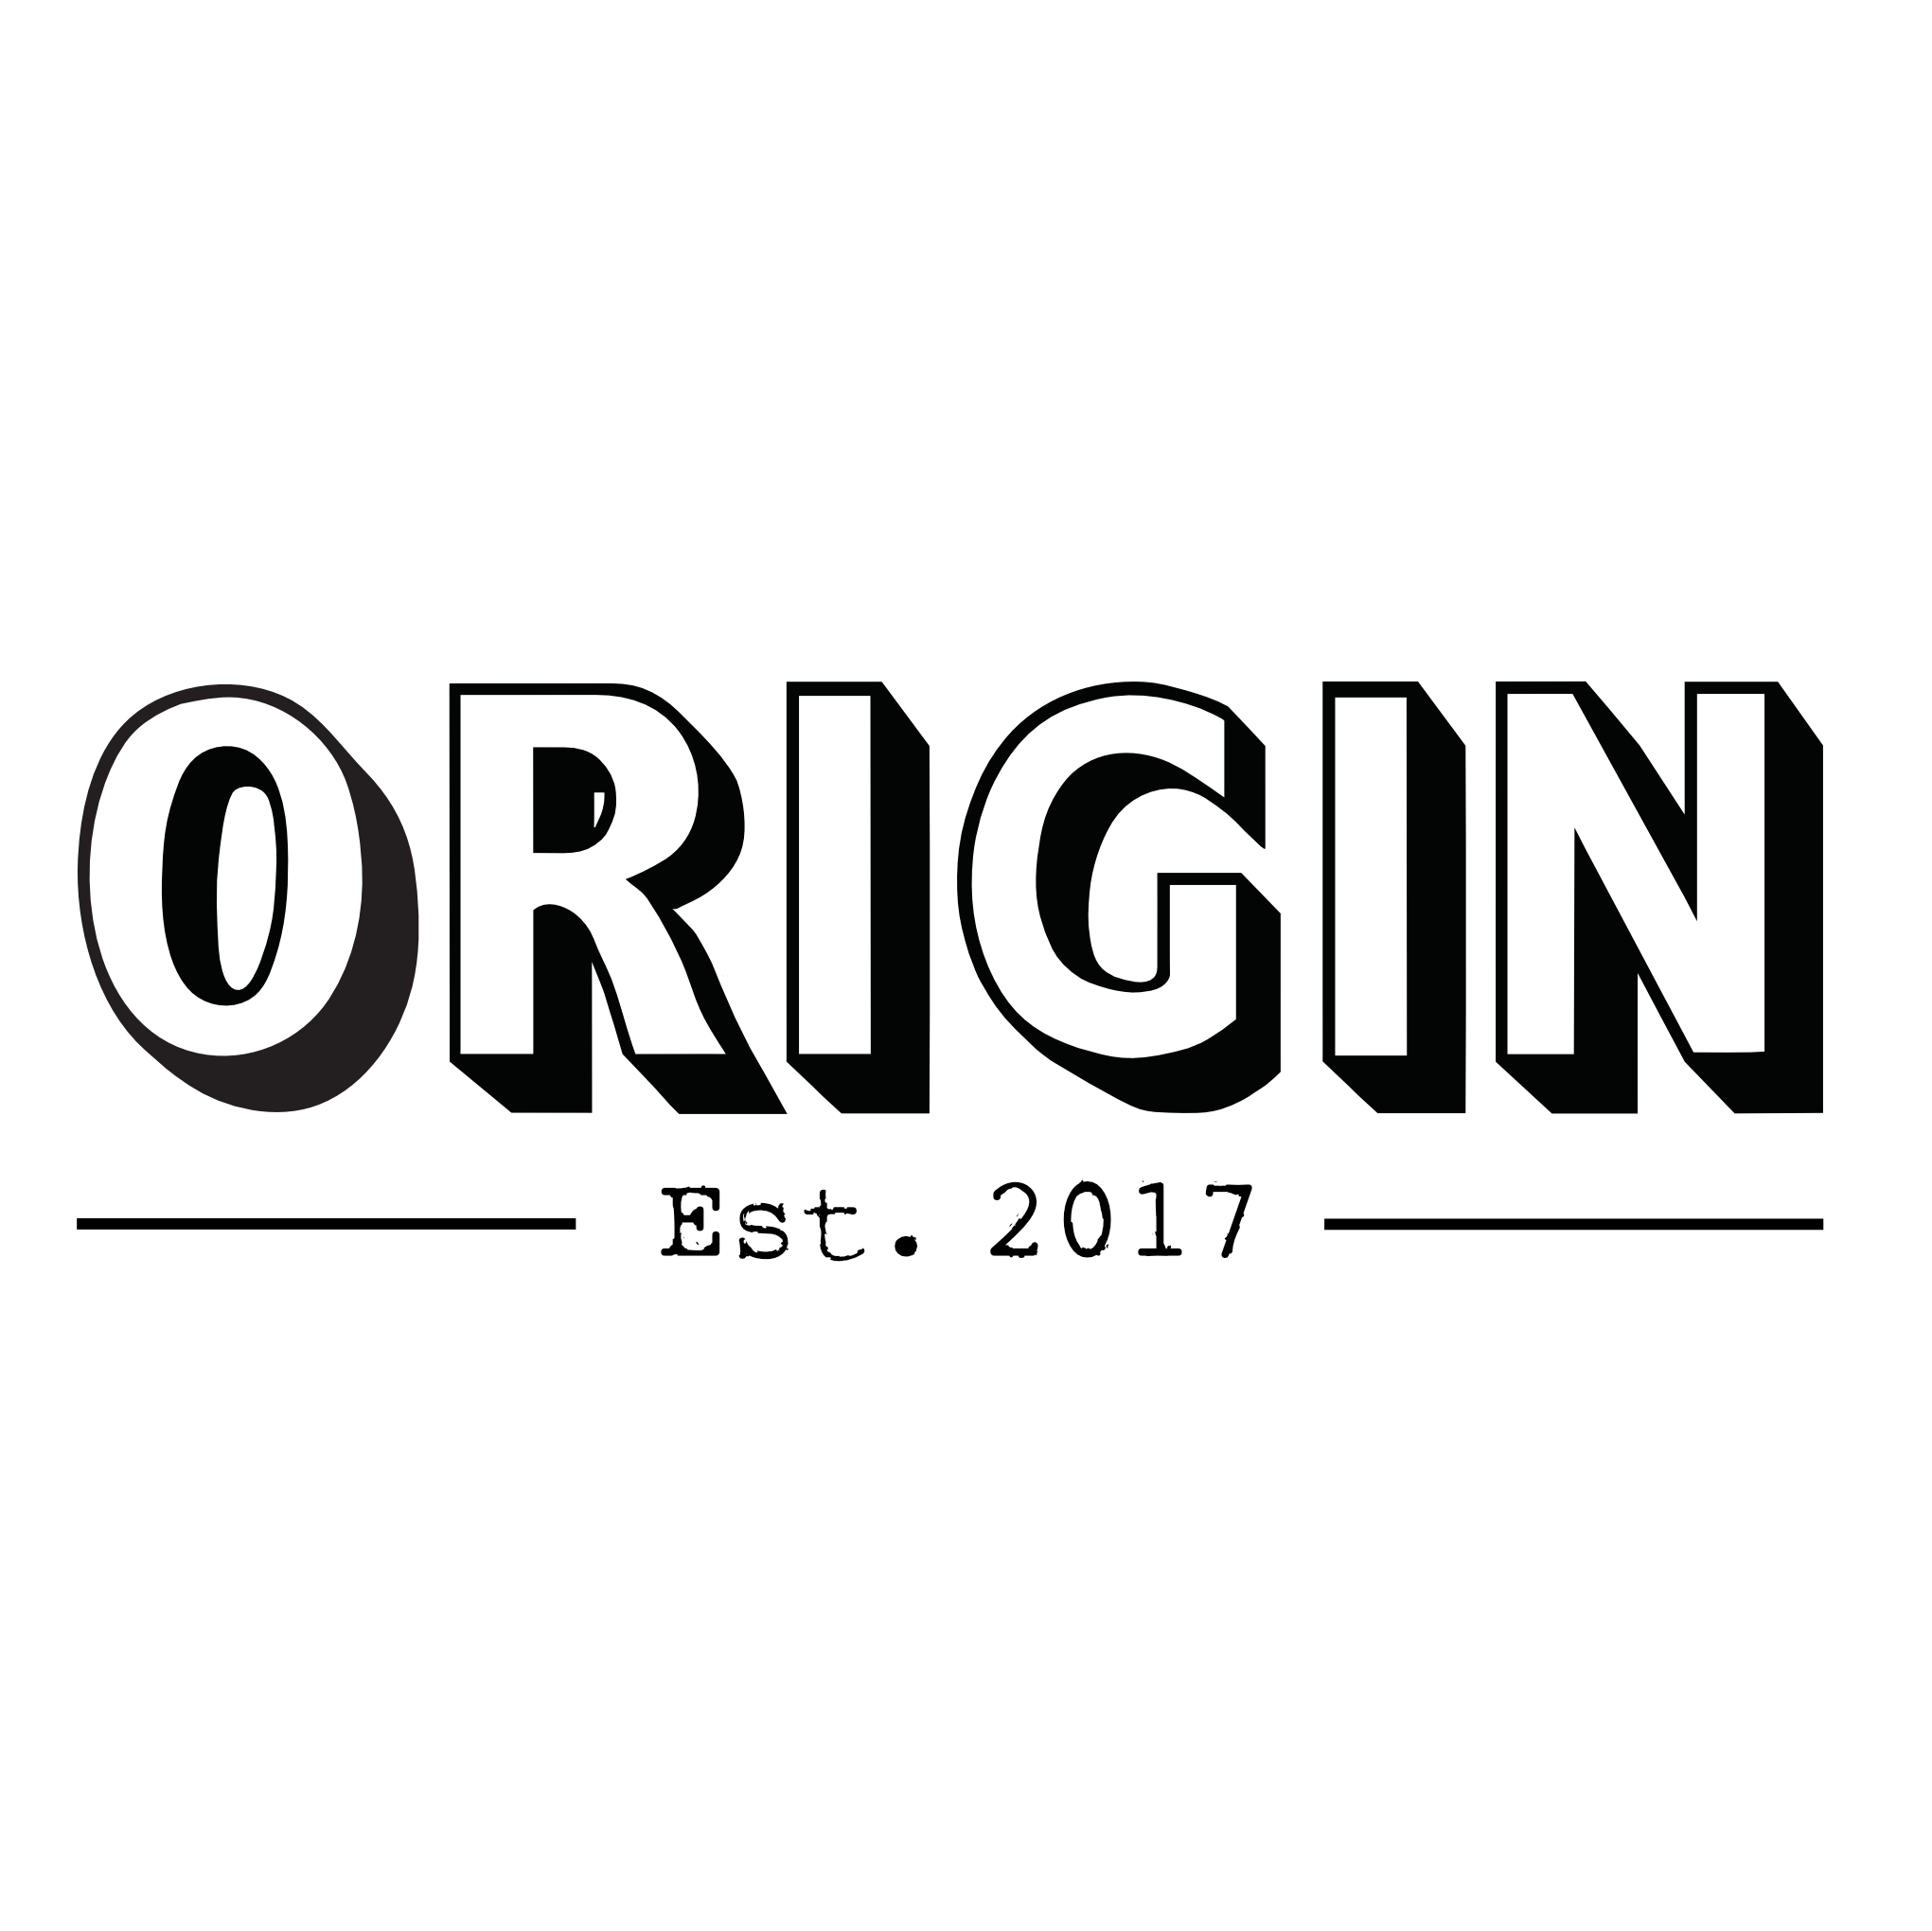 ORIGIN CAFE LTD